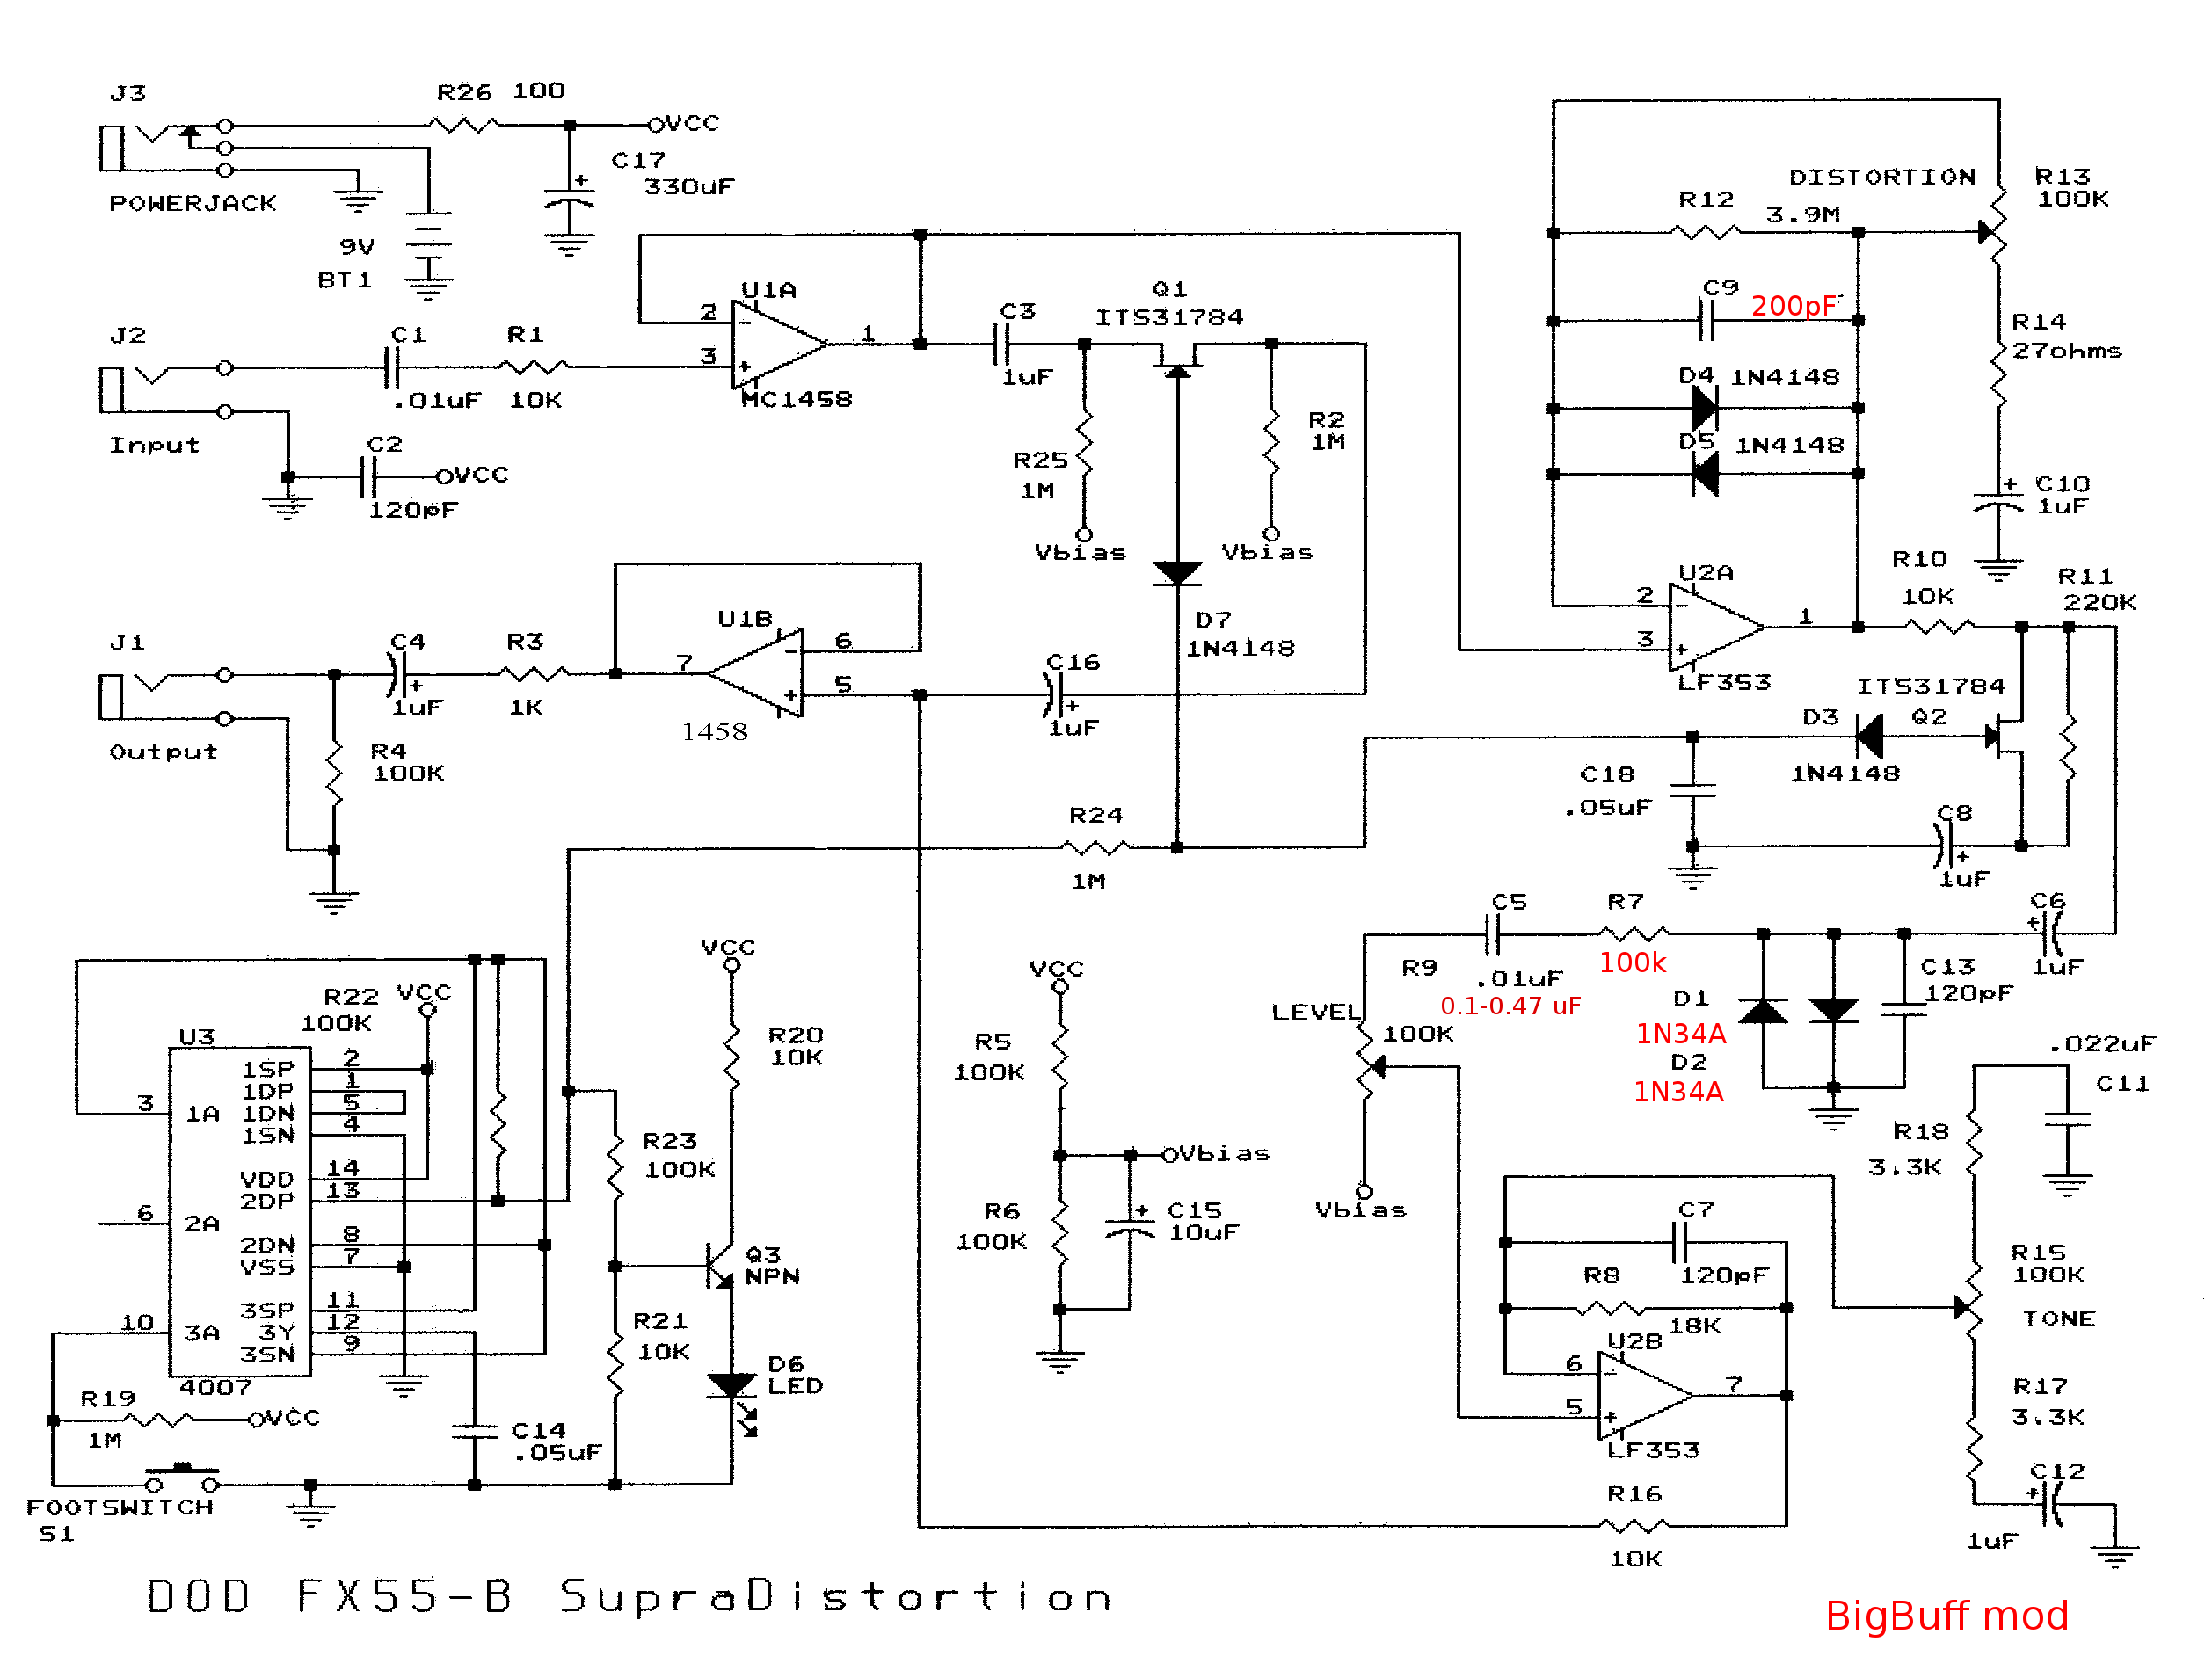 Schematic Notes To Self Voltagecontrolledresistor Measuringandtestcircuit Circuit Dodfx55b Bigbuff Mod